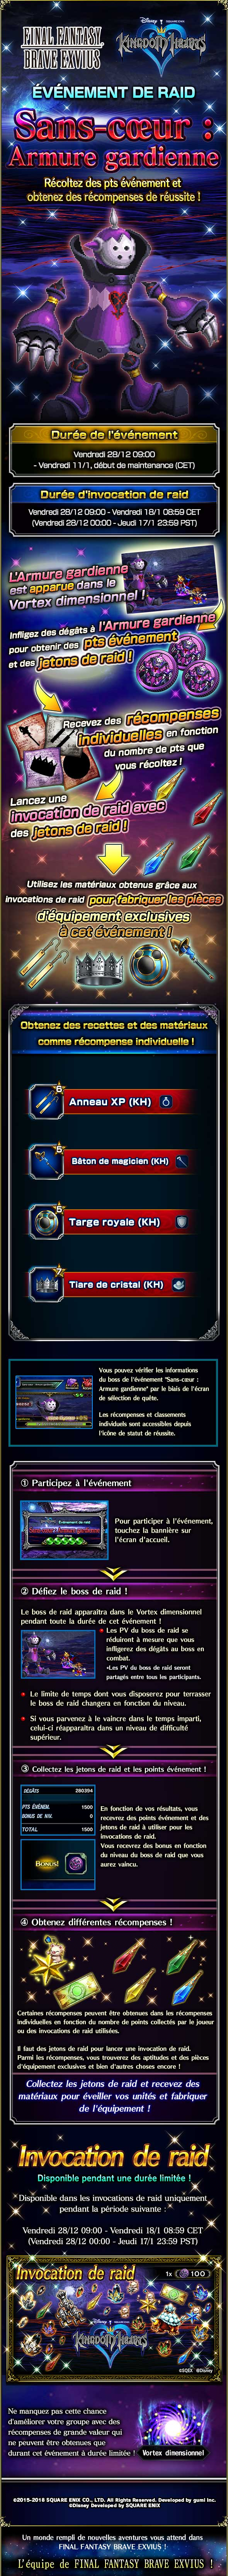 Evenement Raid - Collab Kingdom Hearts - Sans-Coeur: Armure gardienne - à partir du 28/12/18 20181226KHRaid